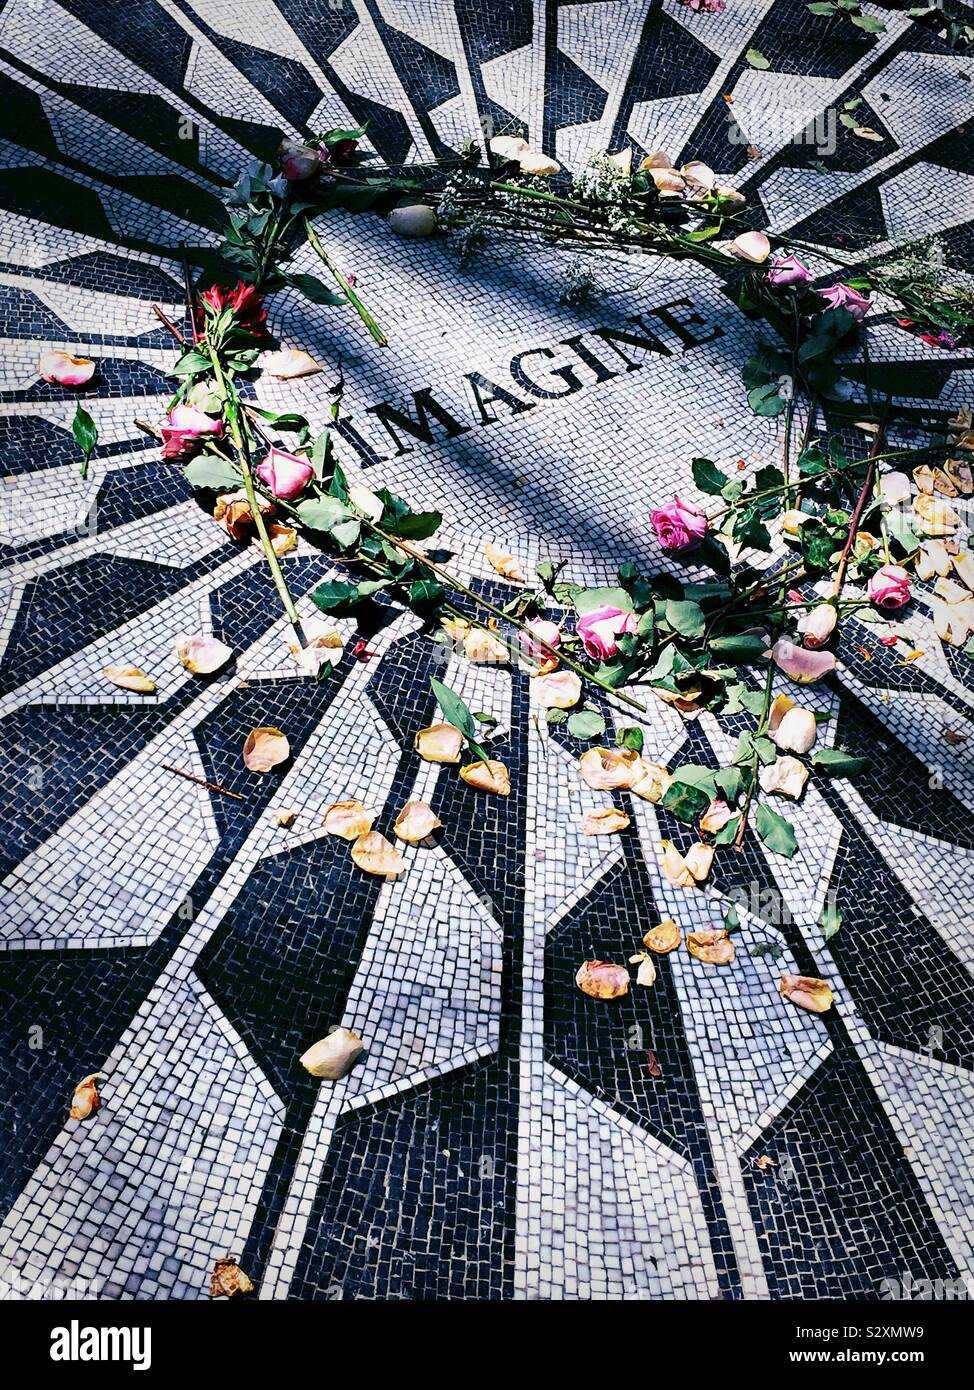 Strawberry Fields mosaic, Central Park, New York, USA Stock Photo